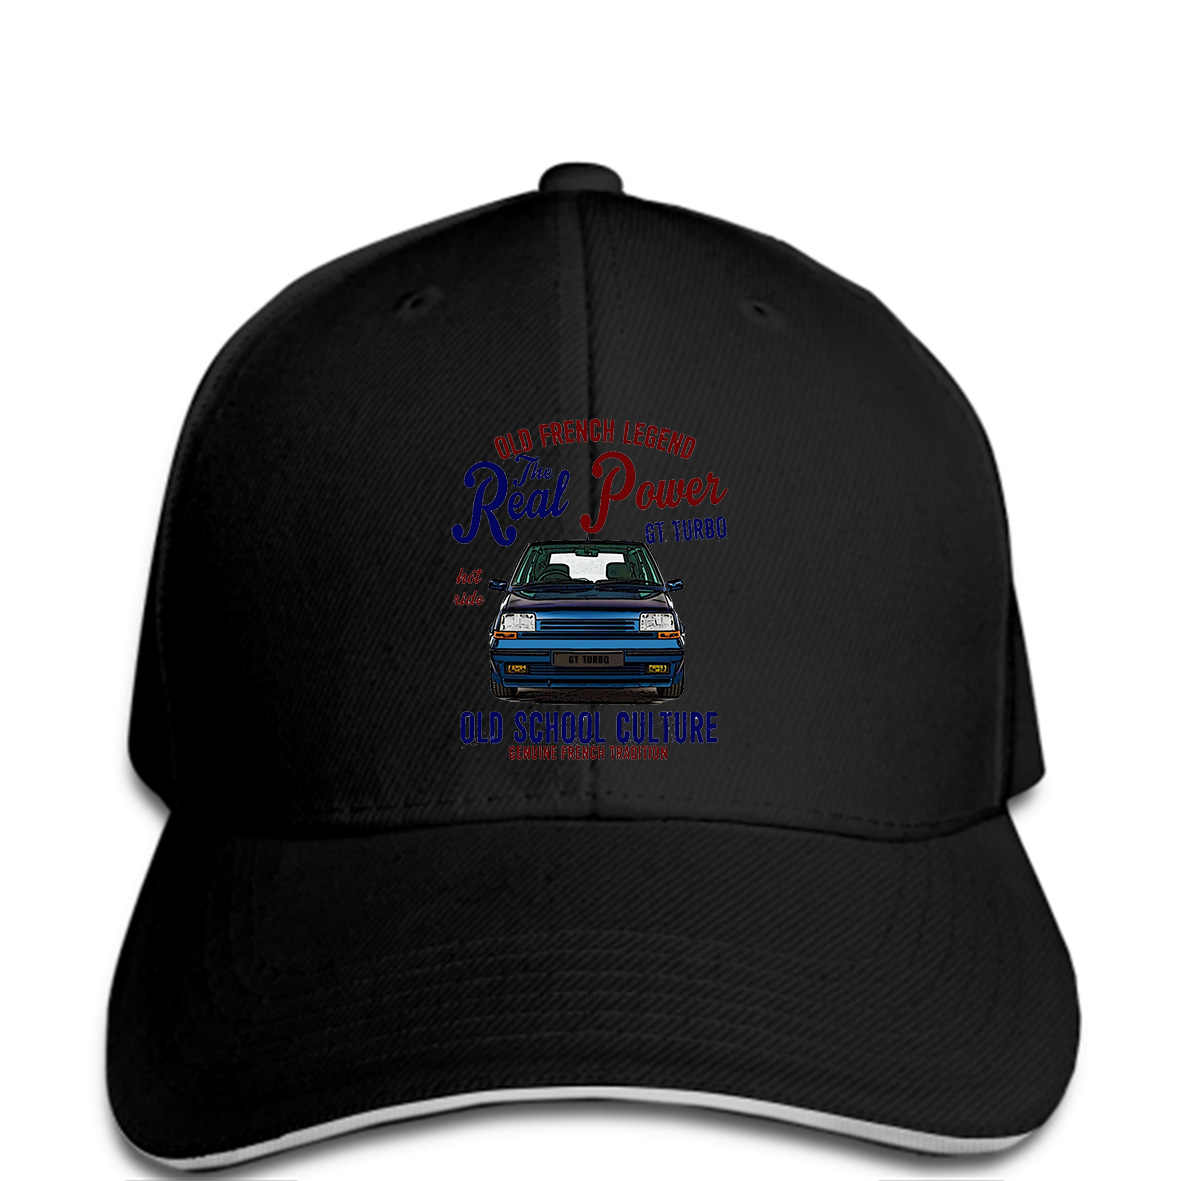 bfb9232bd Baseball cap Vintage French Car Renault 5 Gt Turbo Real Power Hat Mens Casual  Hat